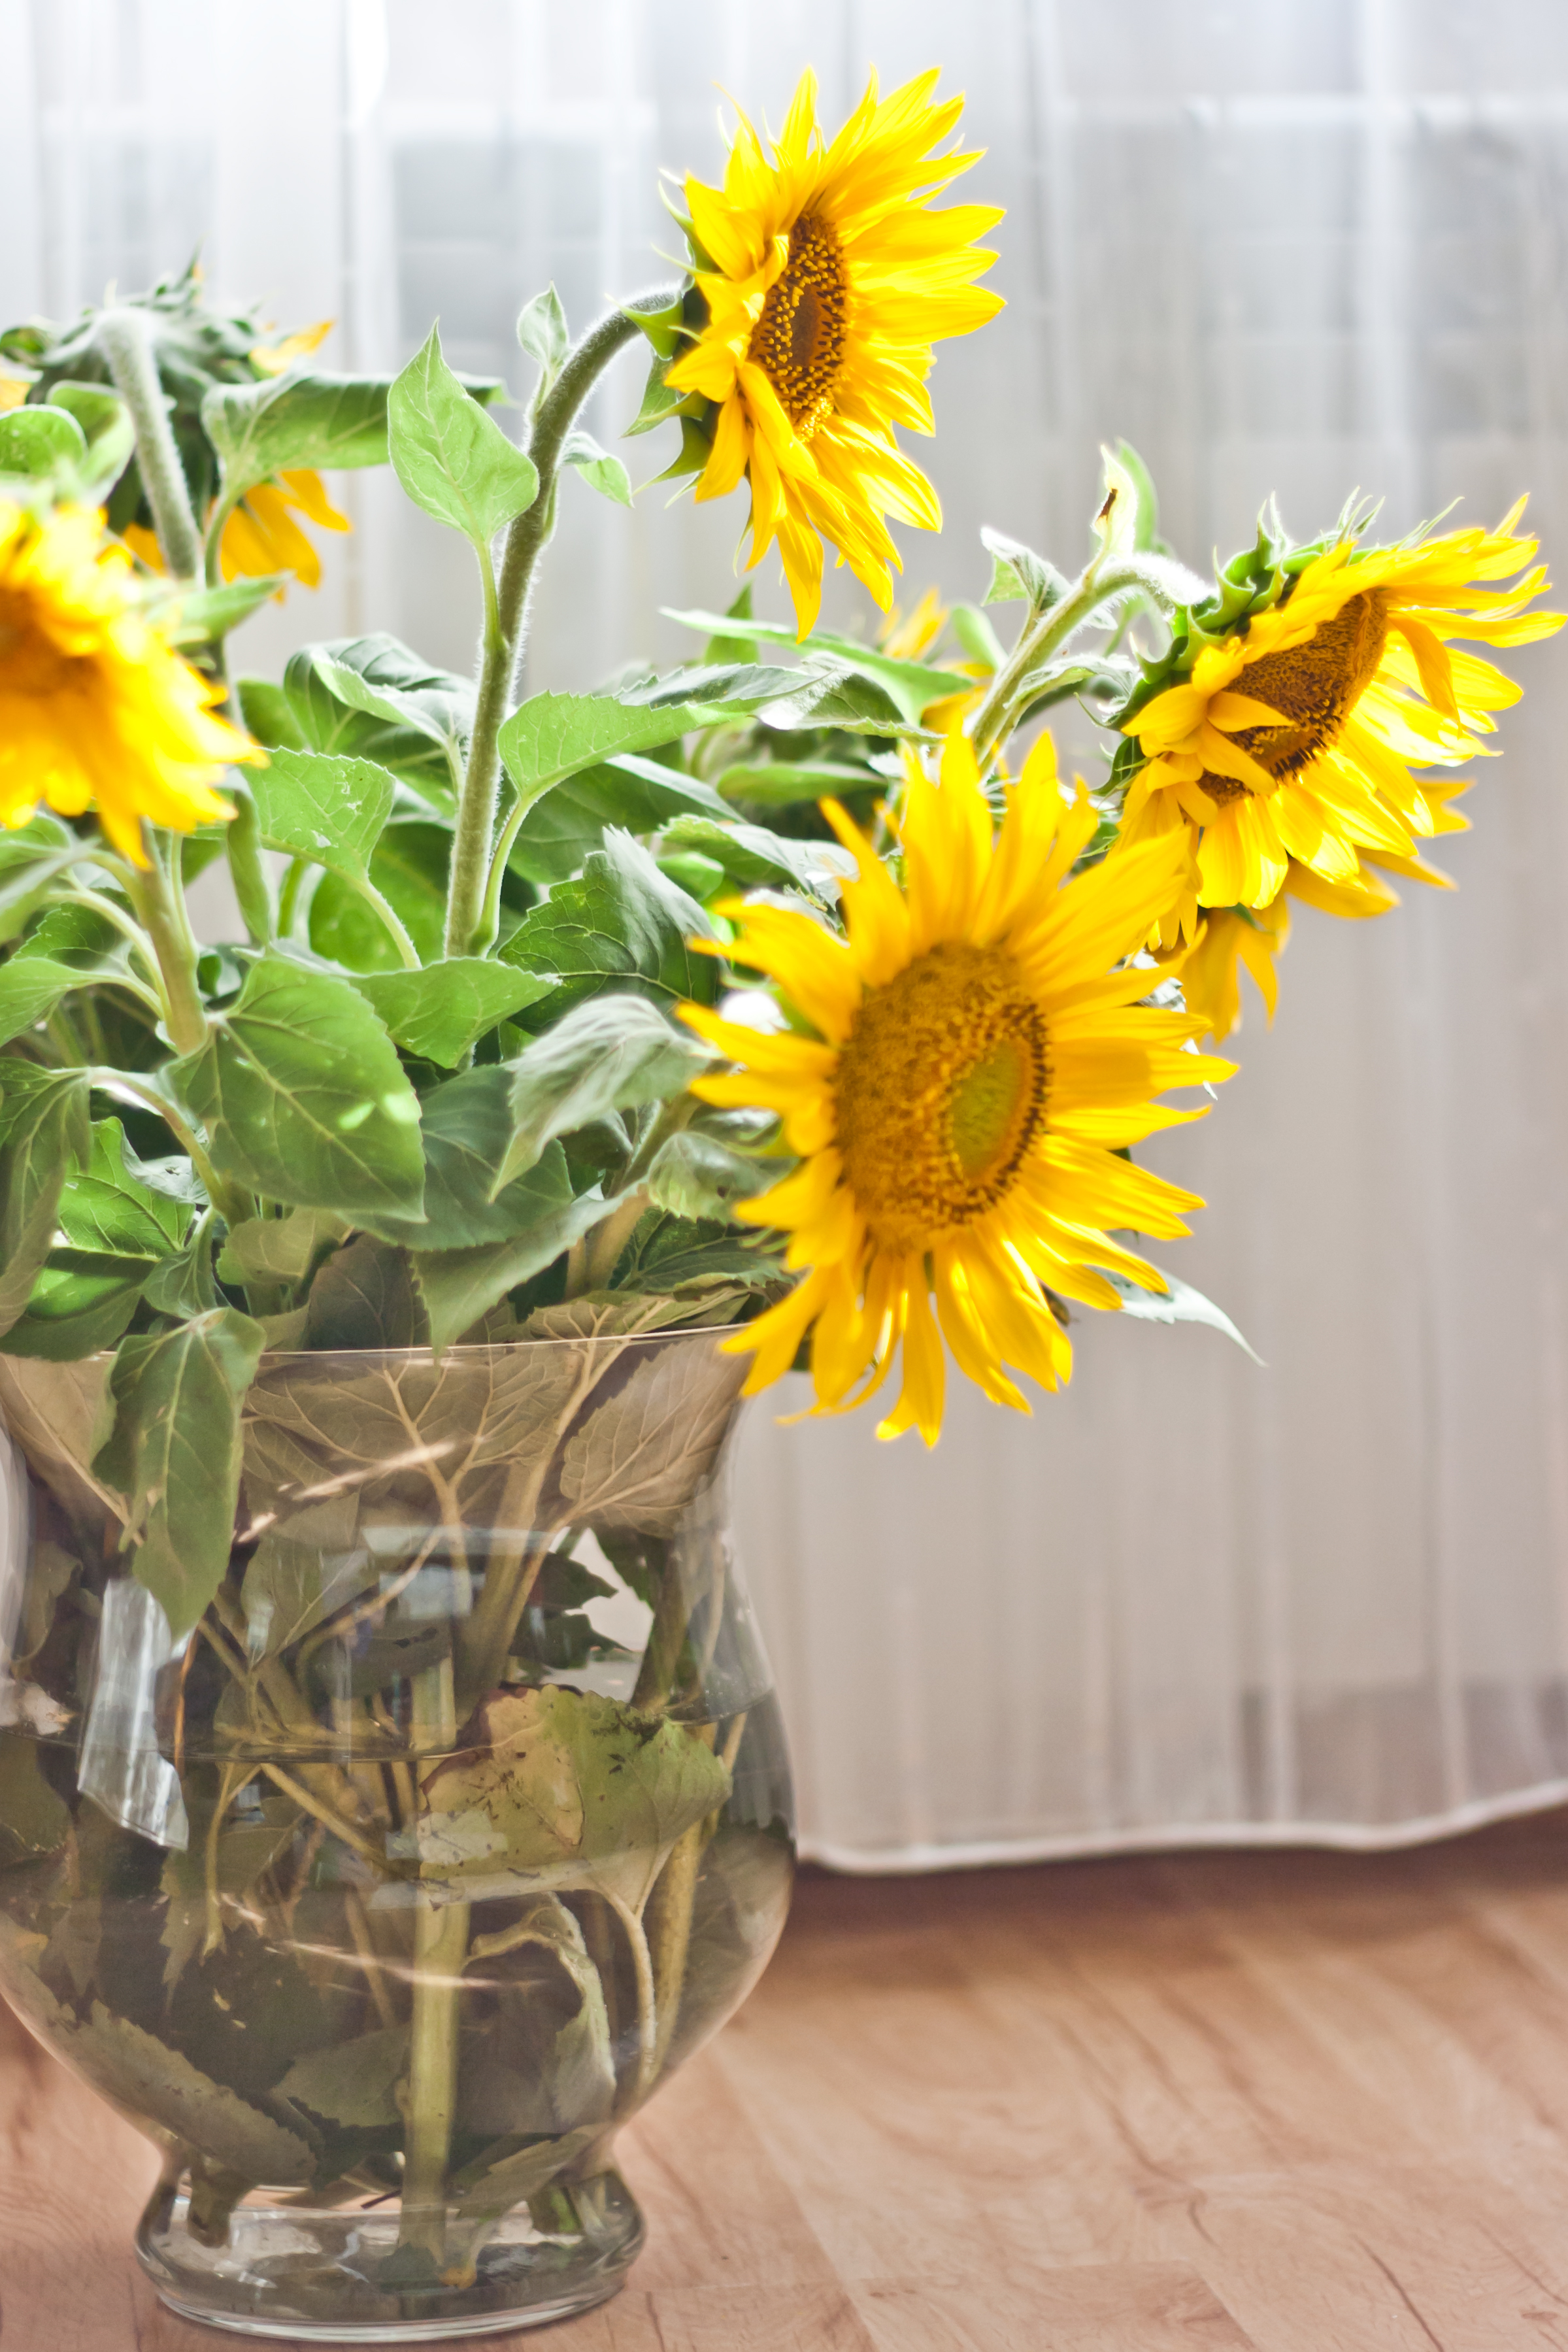 Sunflowers in a Vase · Free Stock Photo